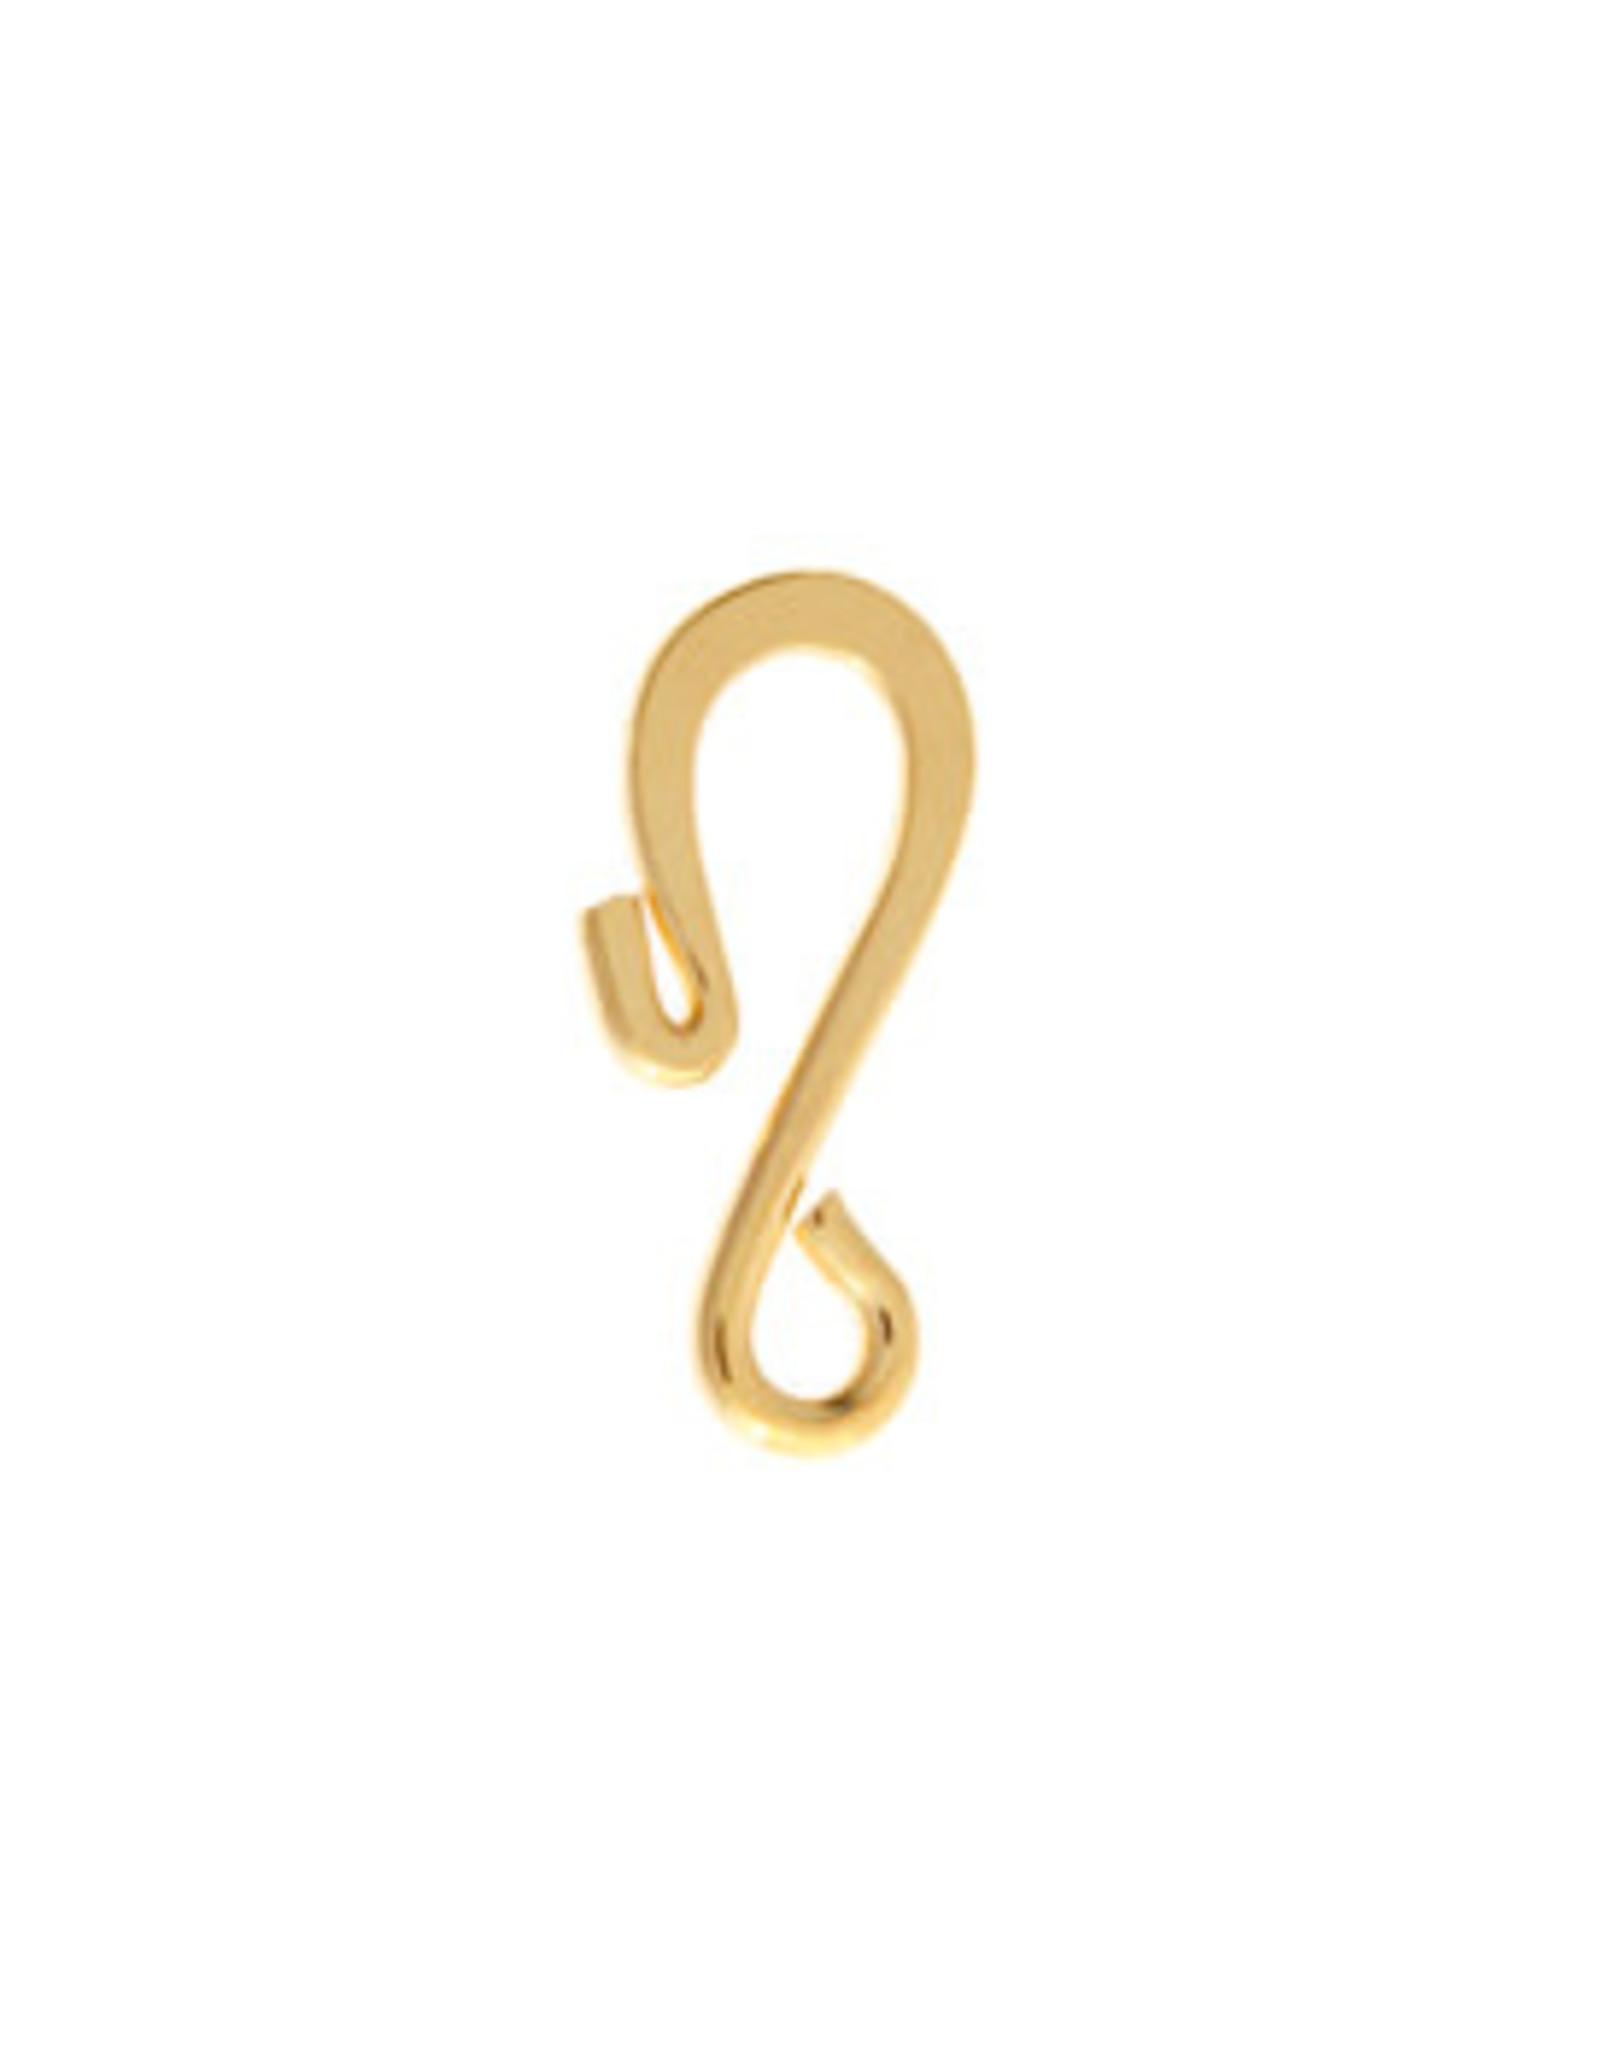 Hook & Eye Clasp  23x6mm Gold  NF  x10